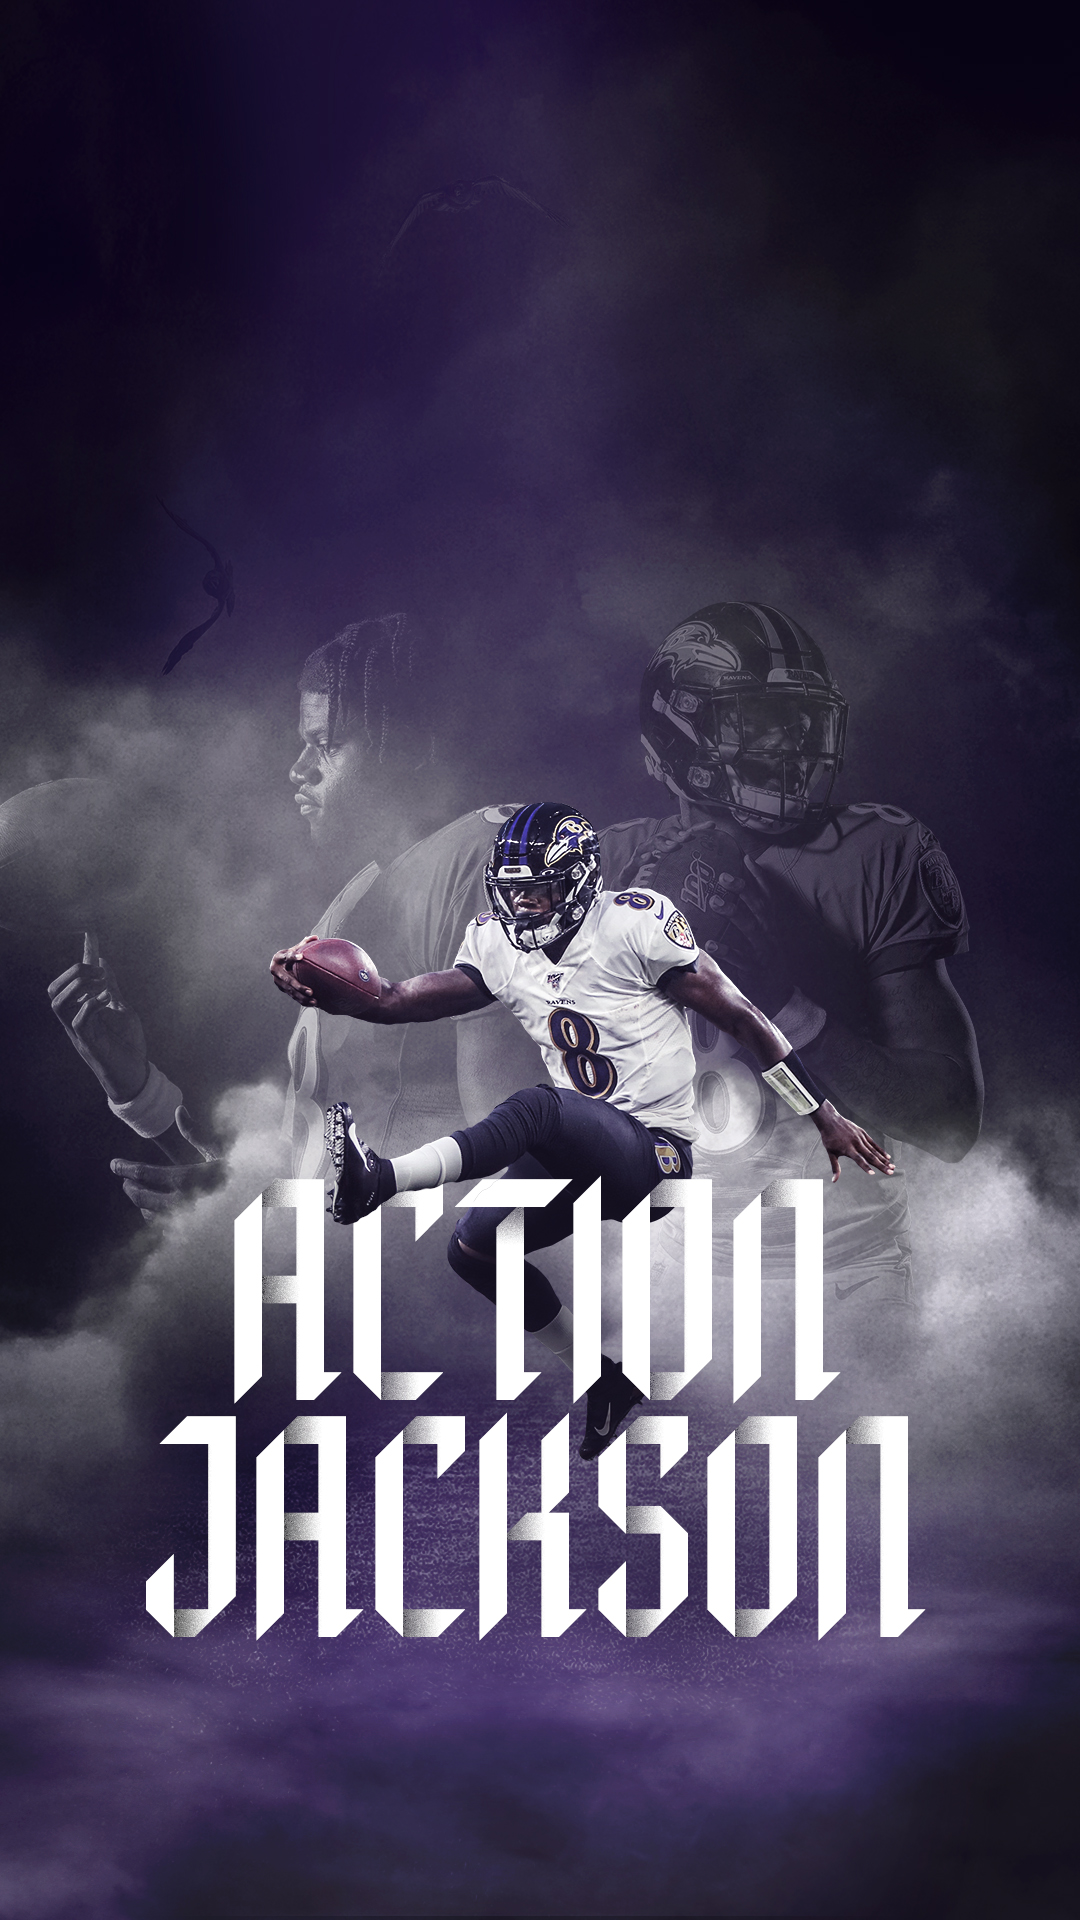 Baltimore Ravens Wallpaper Hd 1080x1920 Wallpaper Teahub Io